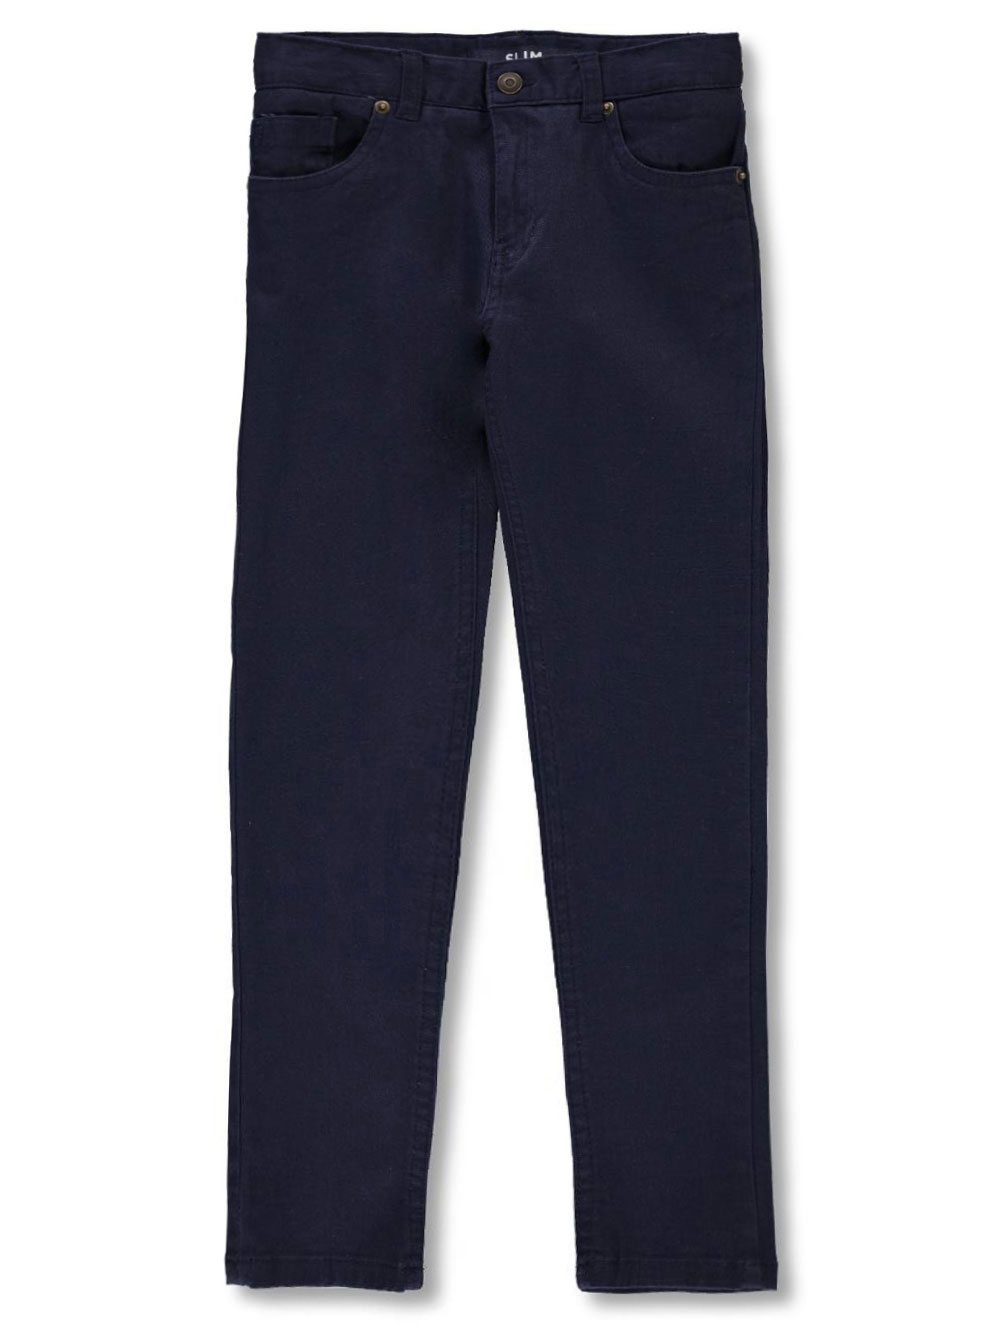 Pants Stretch Twill Construction